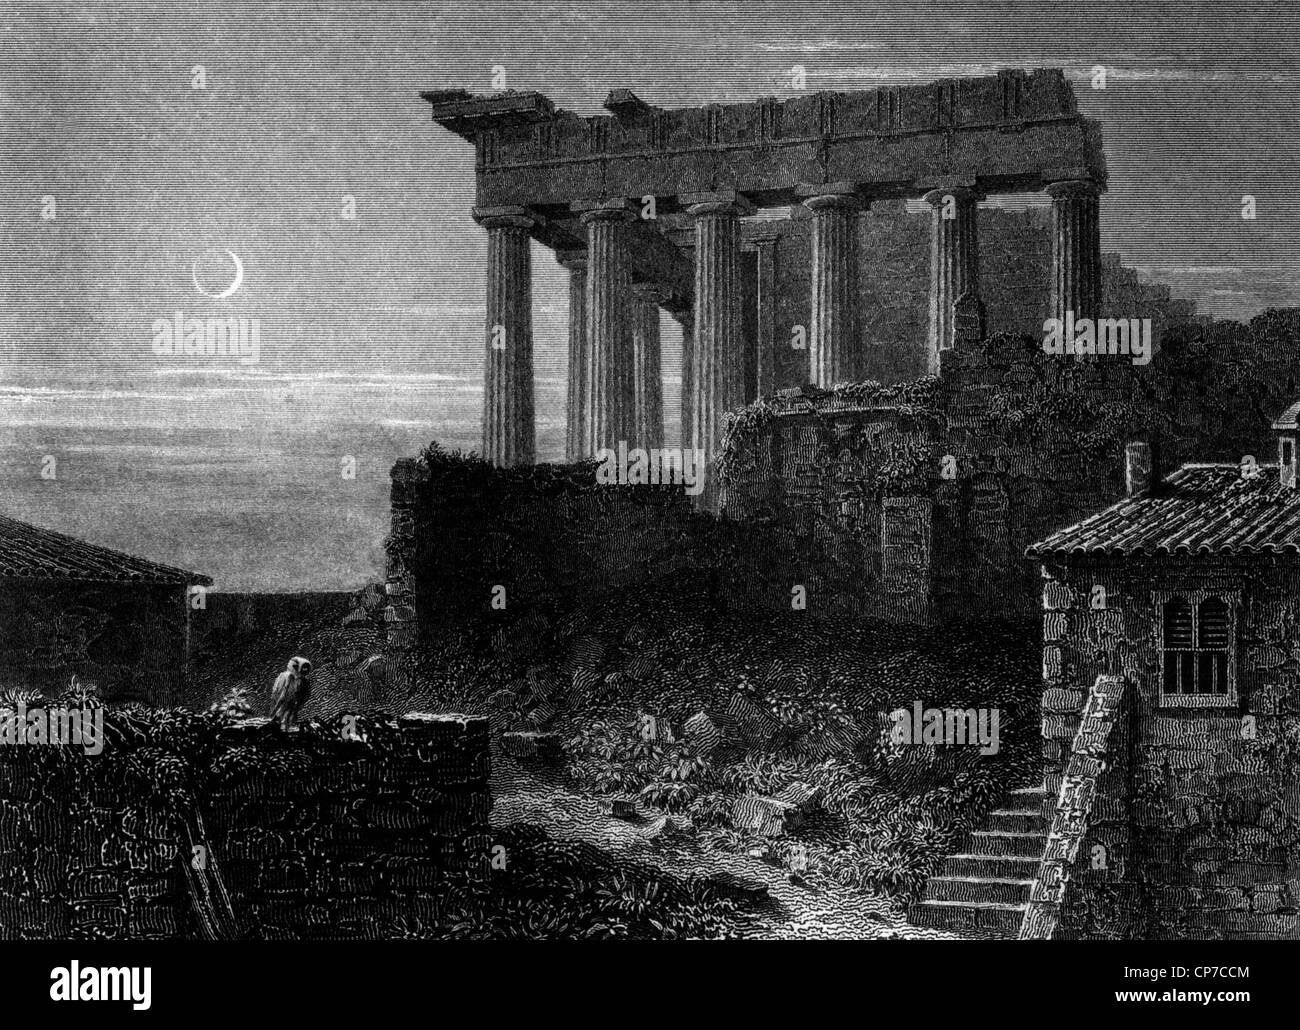 Temple of Athens showing Minerva in Ancient Greece. - Stock Image